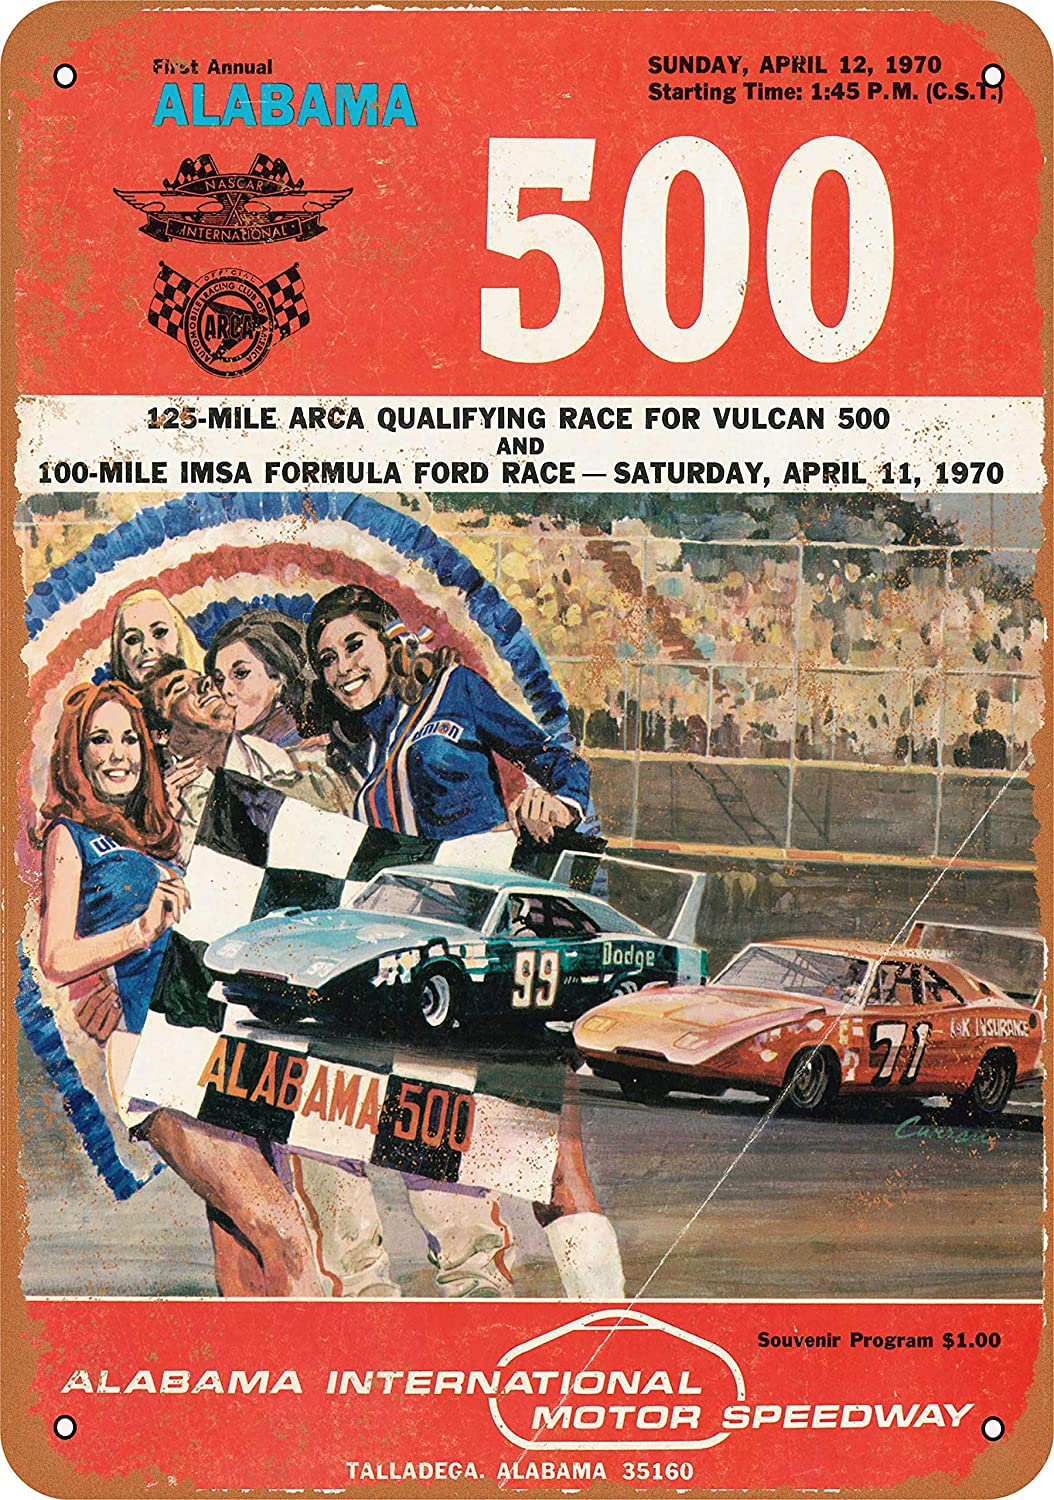 Amazon.com: 9 x 12 Metal Sign - 1970 Alabama 500 Talladega ...